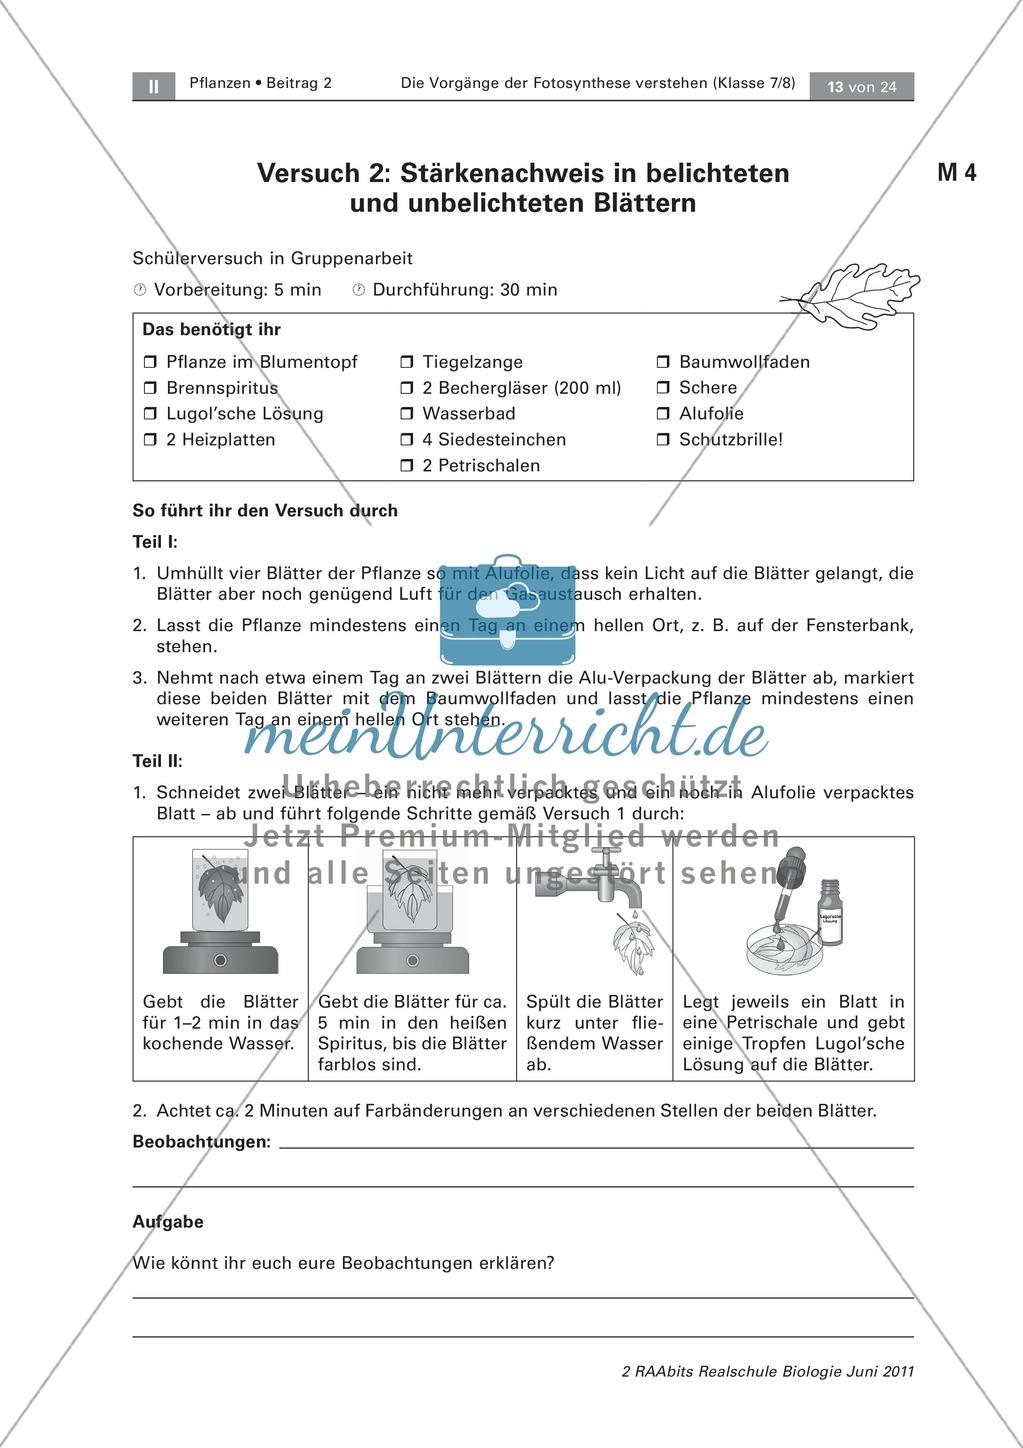 die vorg nge der fotosynthese st rkenachweis in. Black Bedroom Furniture Sets. Home Design Ideas